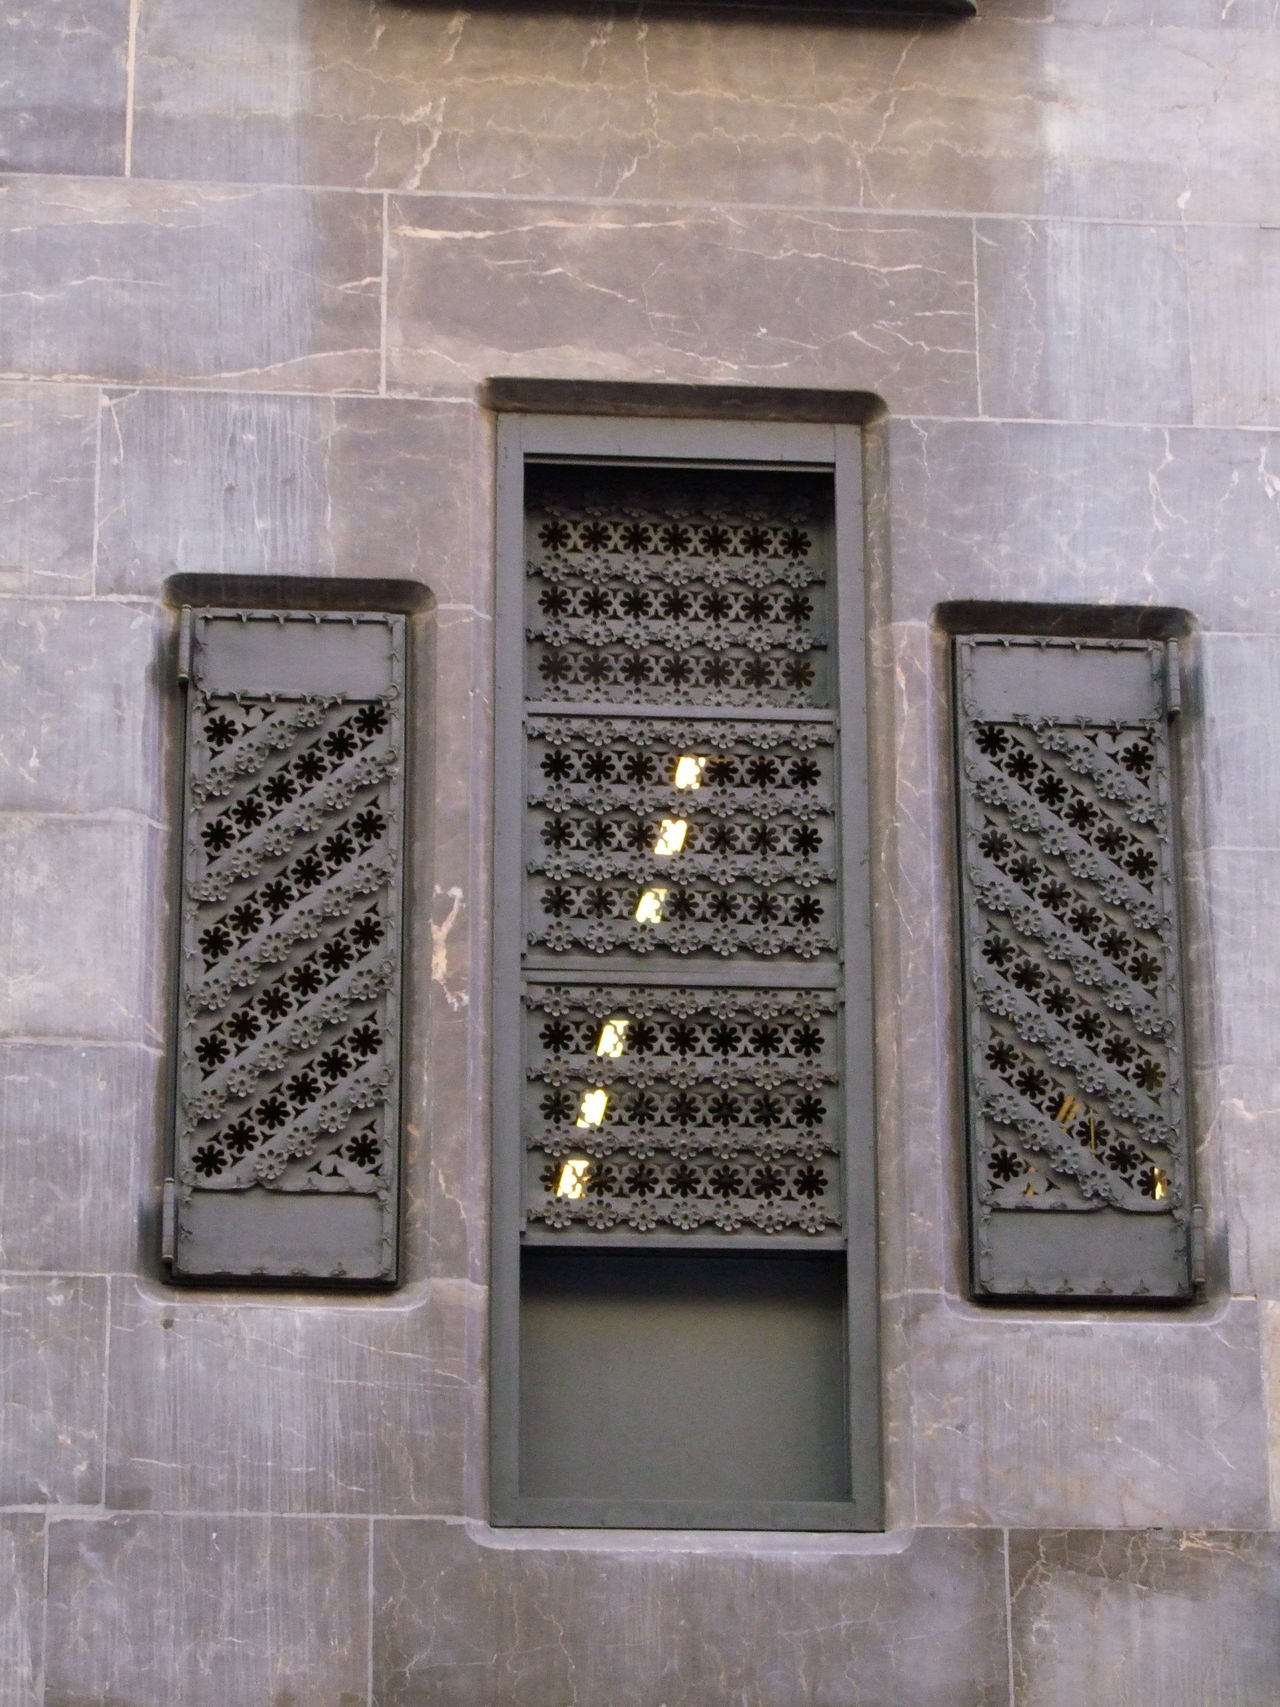 Outside Window Wrought Iron Screen, Palau Guell Architectural Detail Architecture Barcelona Building Exterior Built Structure City Composition Famous Place Famous Places Full Frame Gaudi Gaudì Architecture Work House No People Ornate Outdoor Photography Palace Palau Guell Screen Spaın Sunlight And Shadow Tourist Attraction  Tourist Destination Window Wrought Iron Design